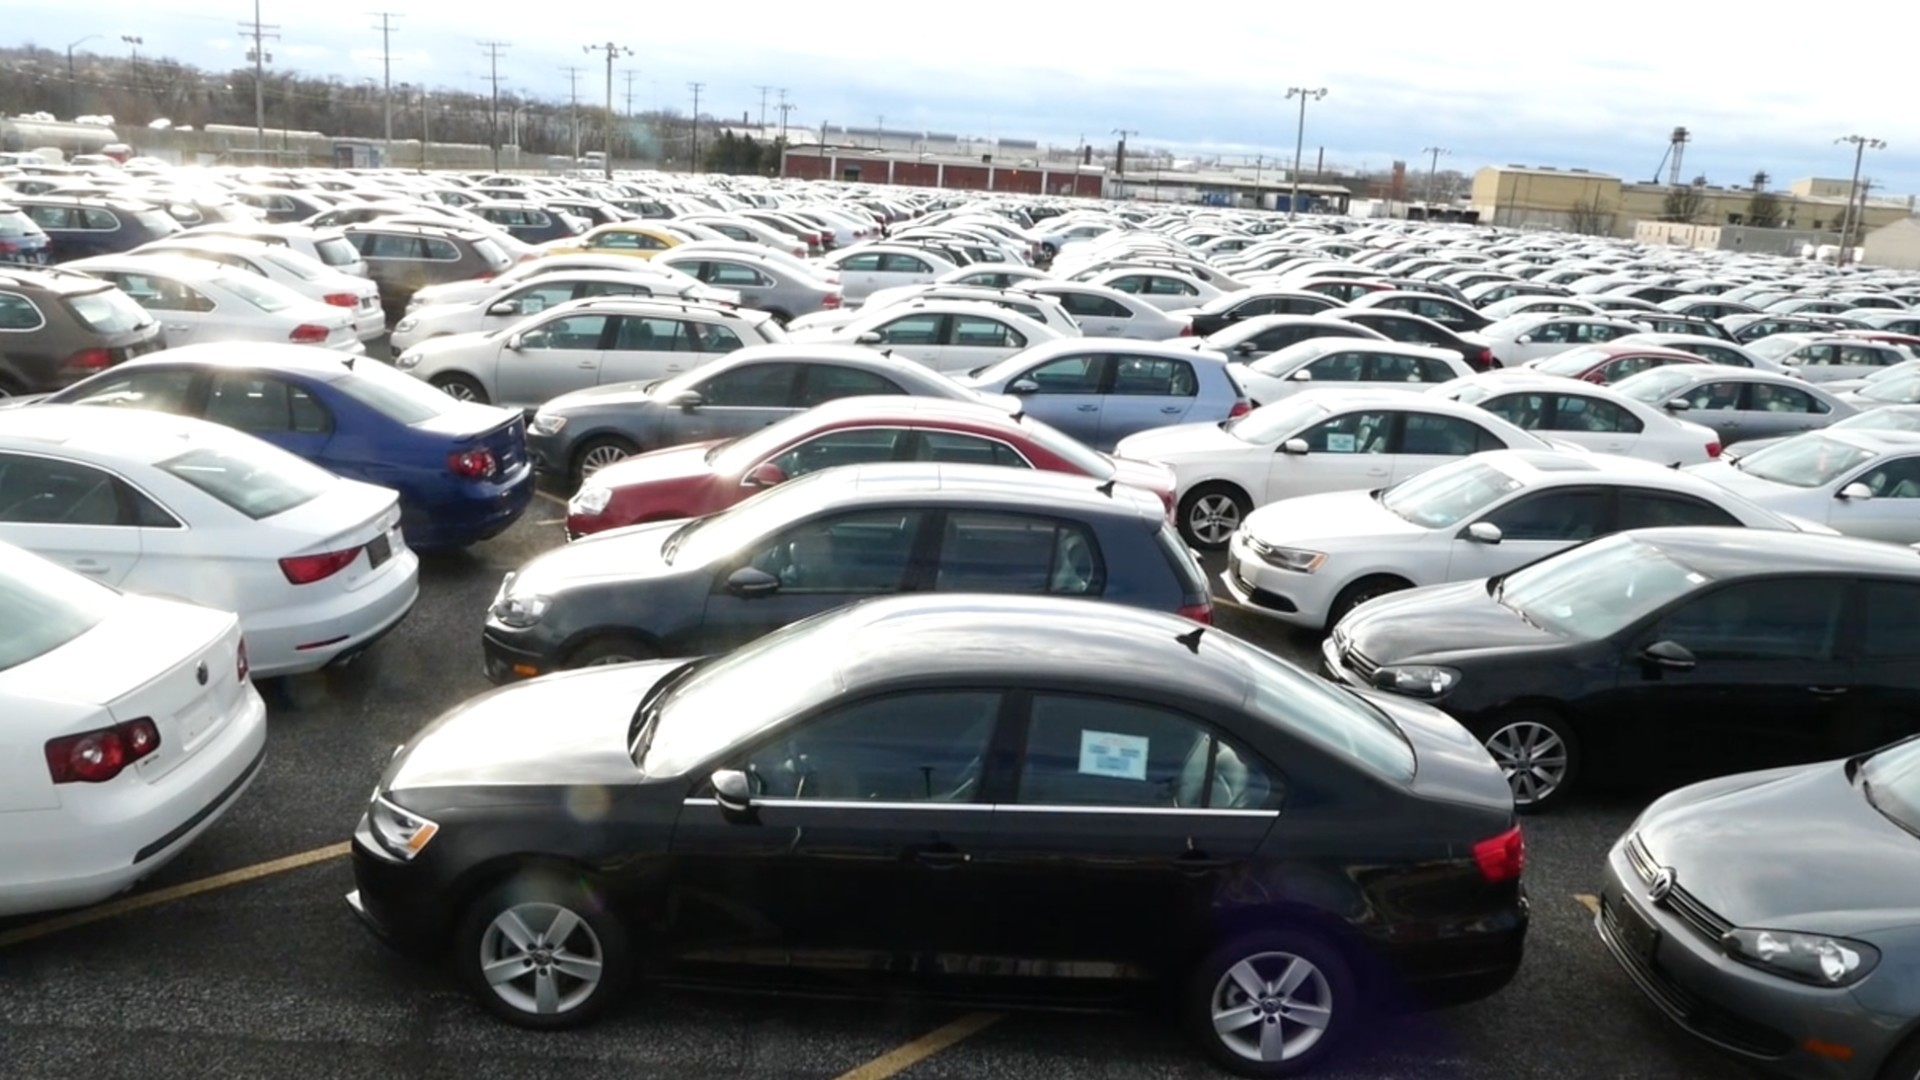 Thousands Of Returned Volkswagen Cars Stored In Baltimore